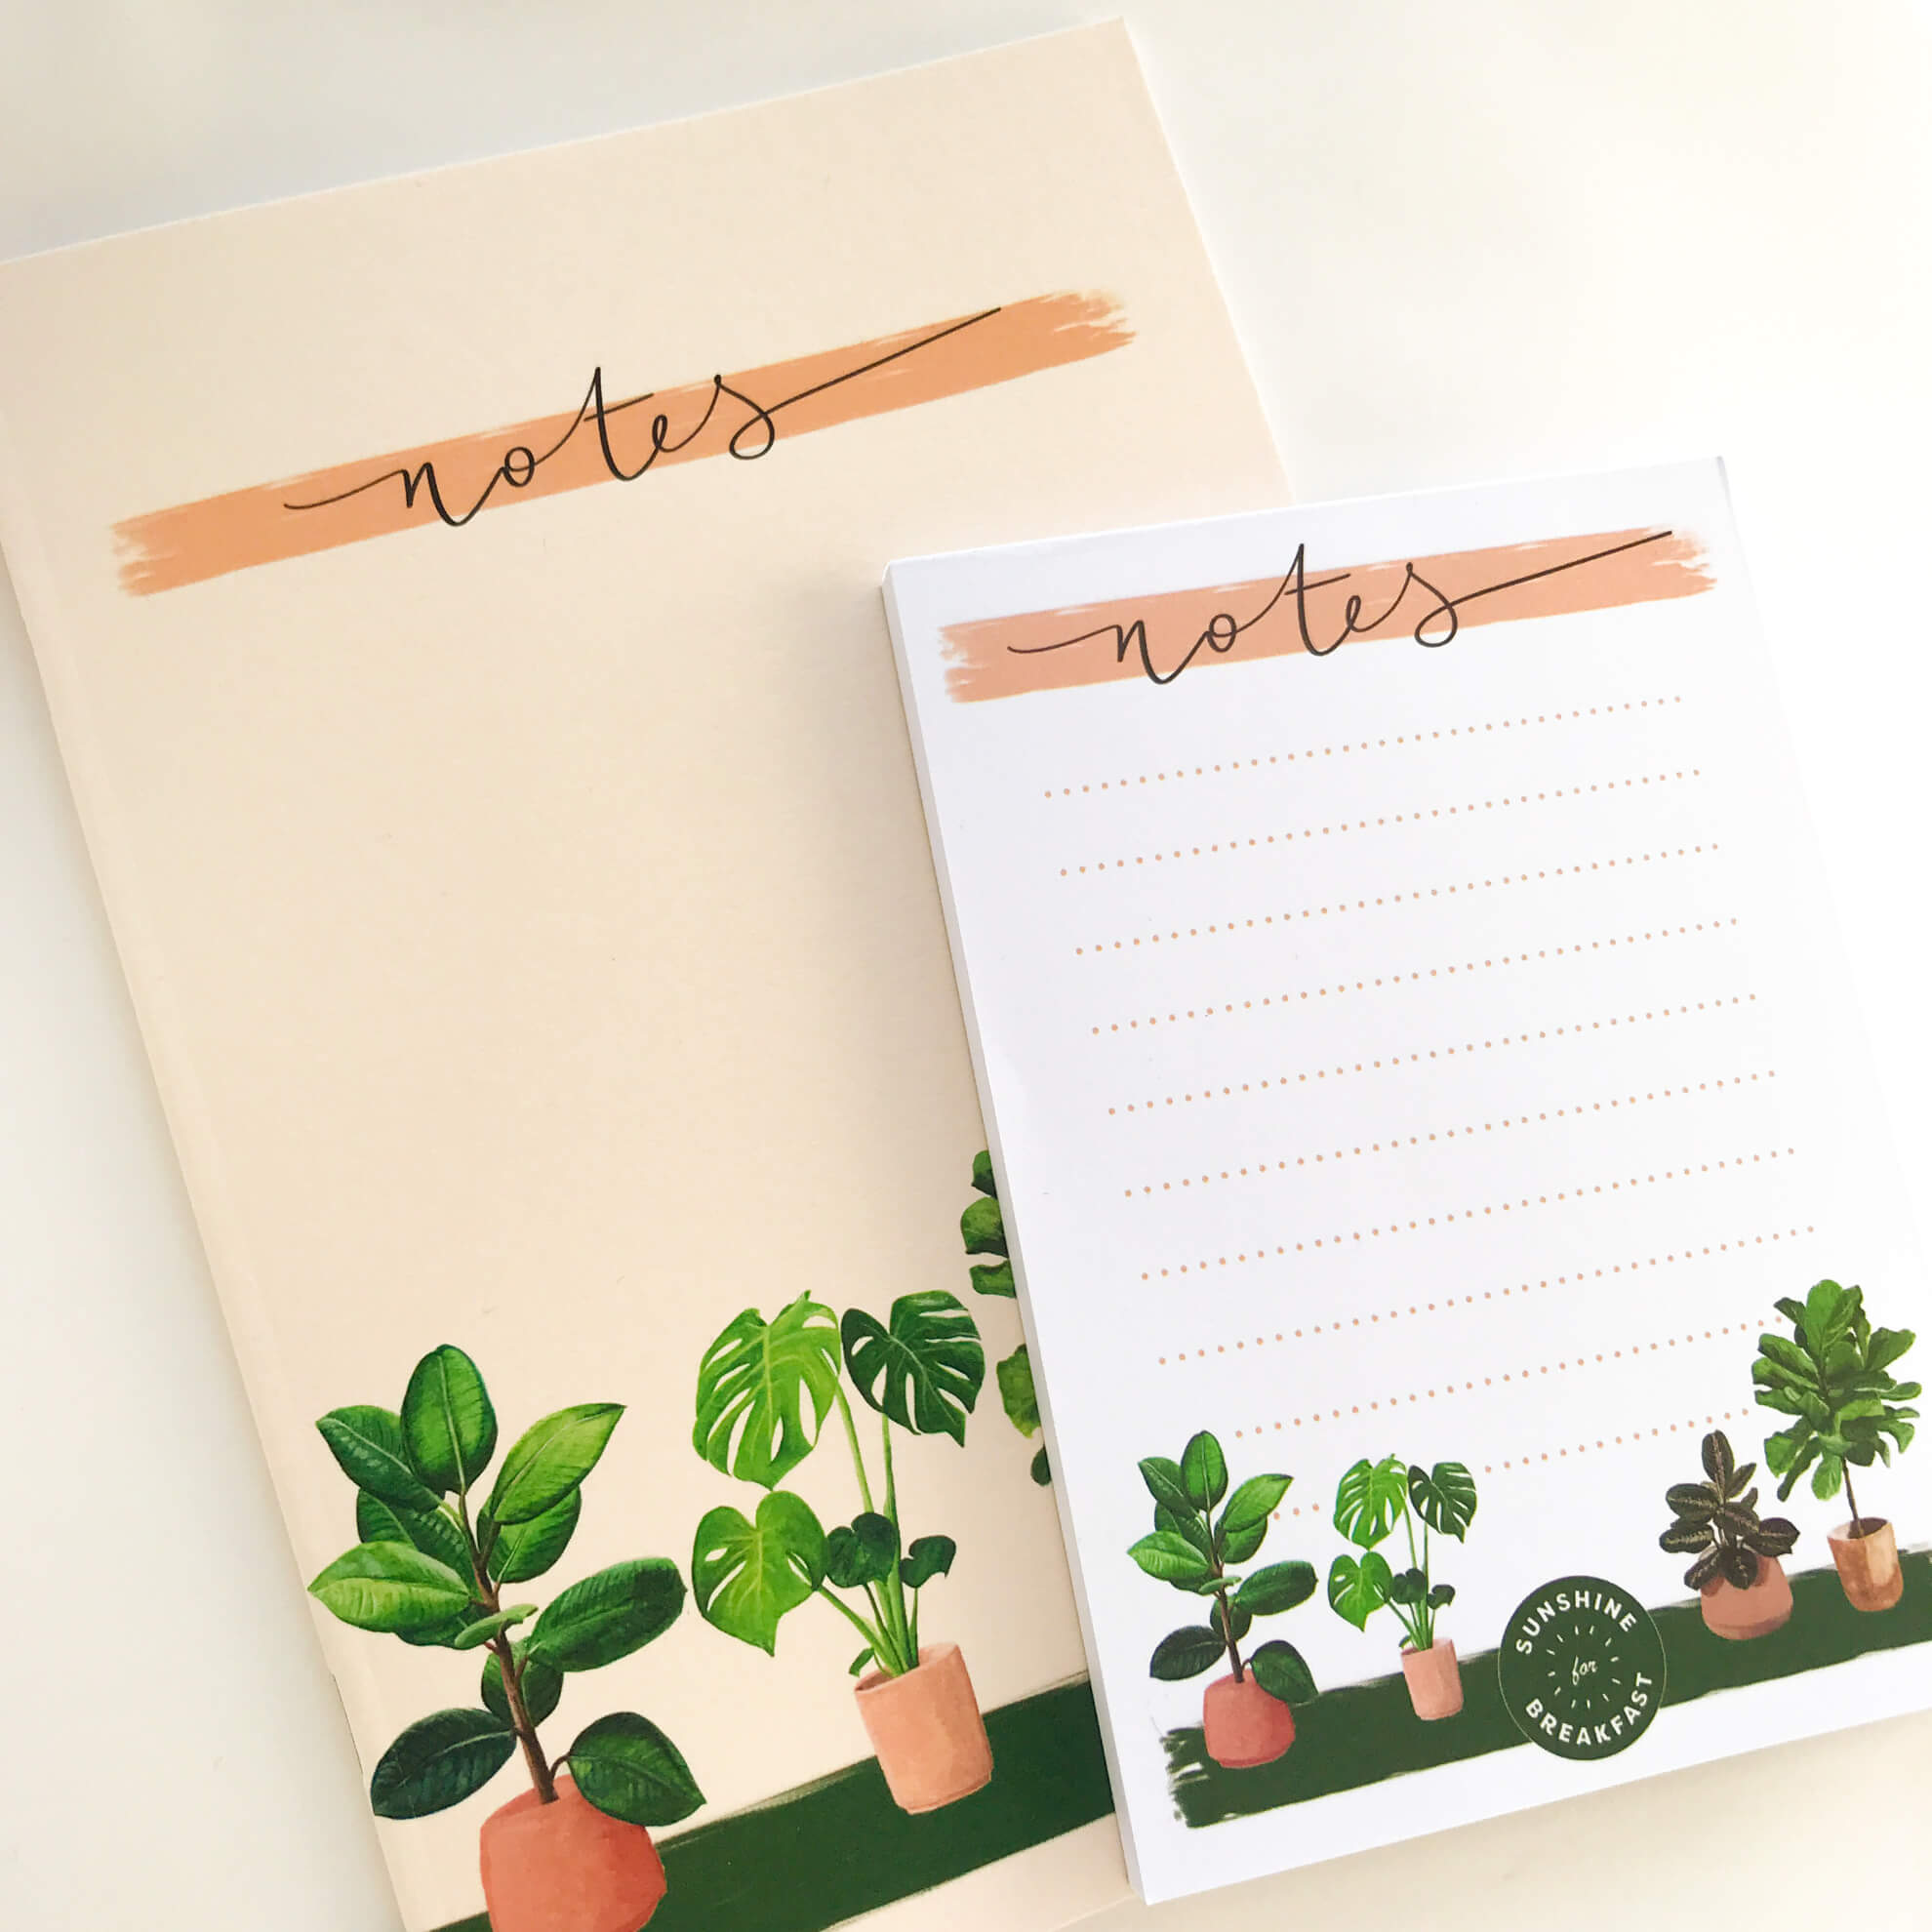 House plants notepad, on top of a house plants notebook, both with 'Note' title at top of page